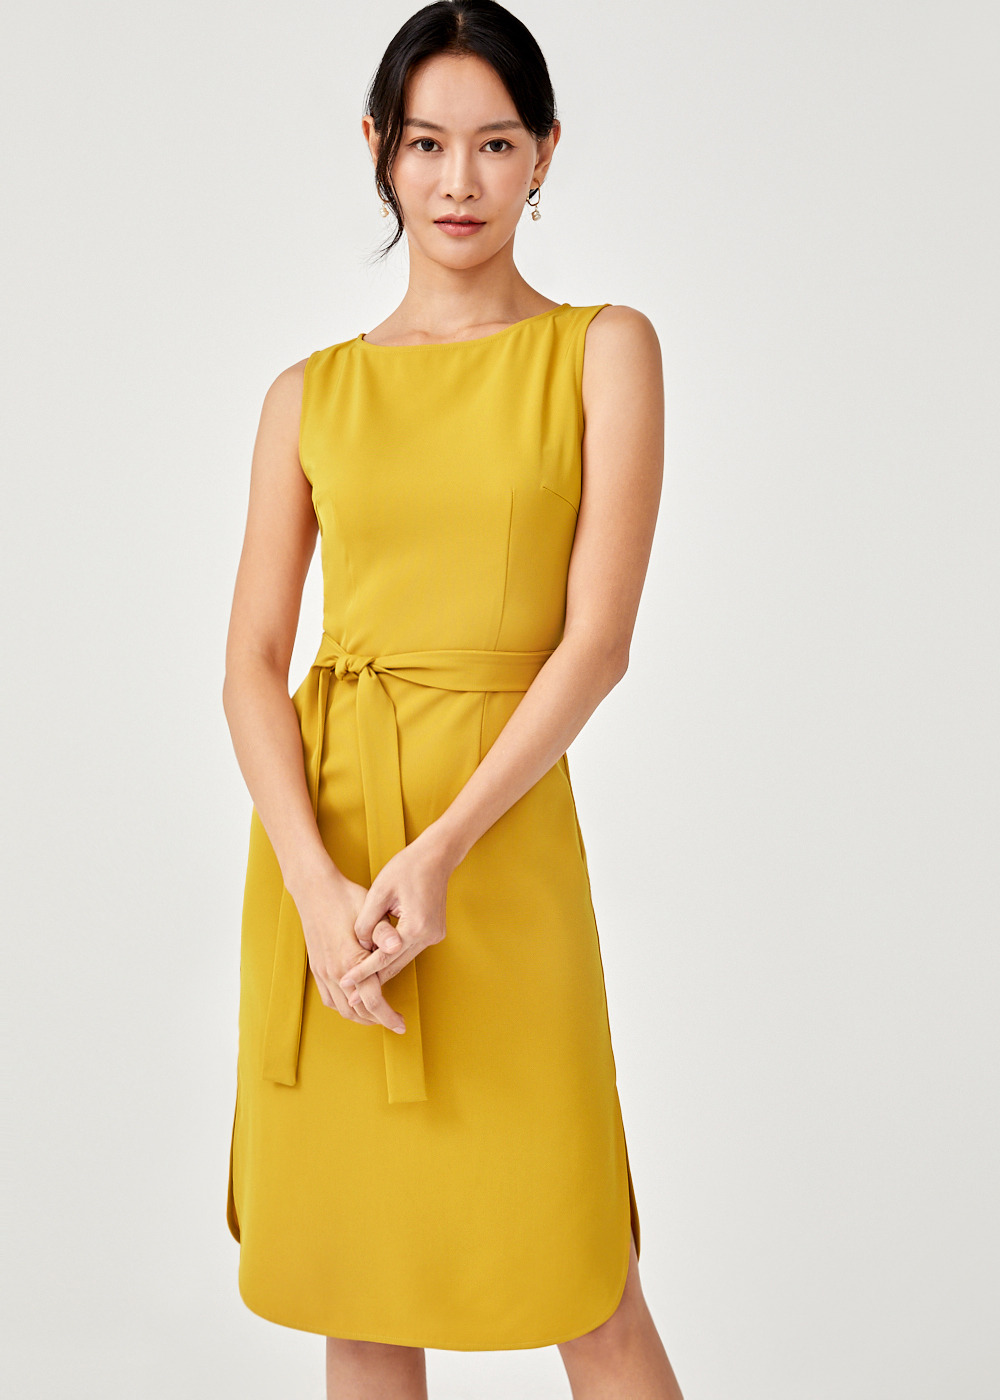 Sunia Sash Curved Hem Dress